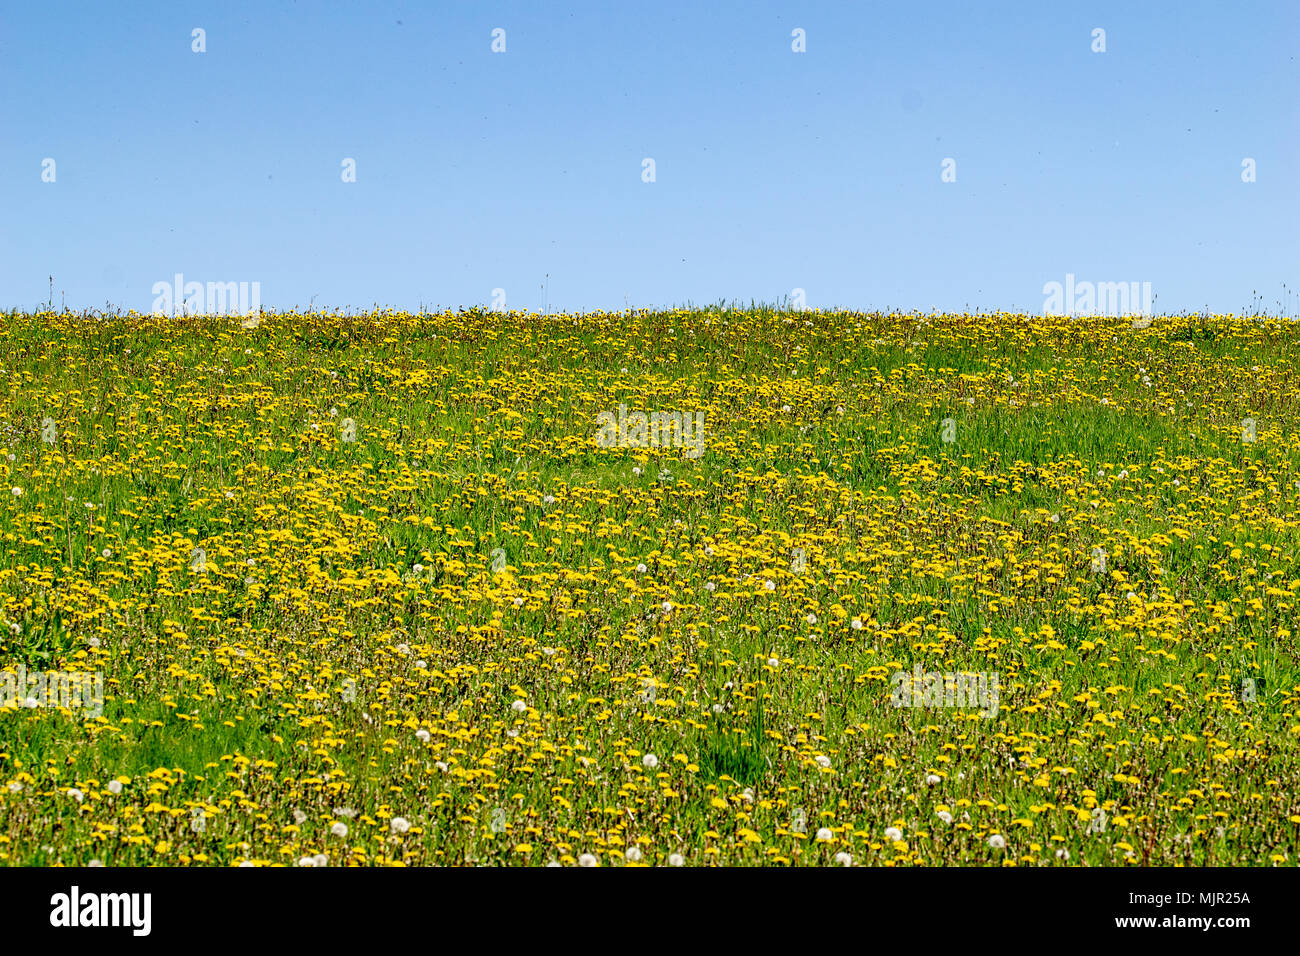 Spring bank holiday stock photos spring bank holiday stock images hot spring bank holiday with fields of wild flowers and honey bees collecting nectar pollen from mightylinksfo Choice Image